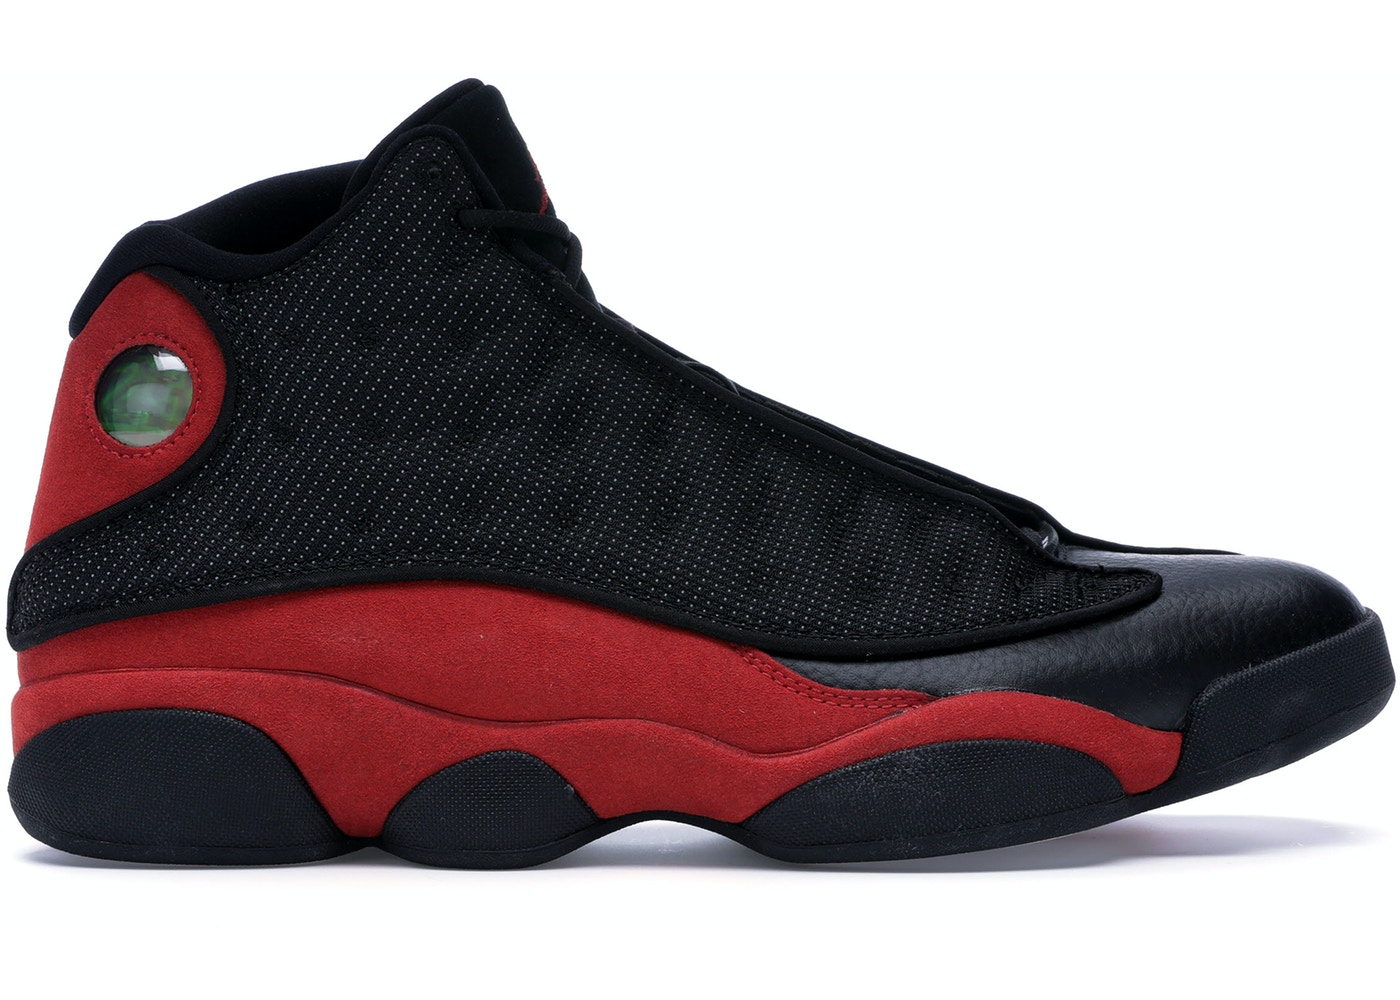 factory price 5718c f76a0 Jordan 13 Retro Bred (2017) - 414571-004